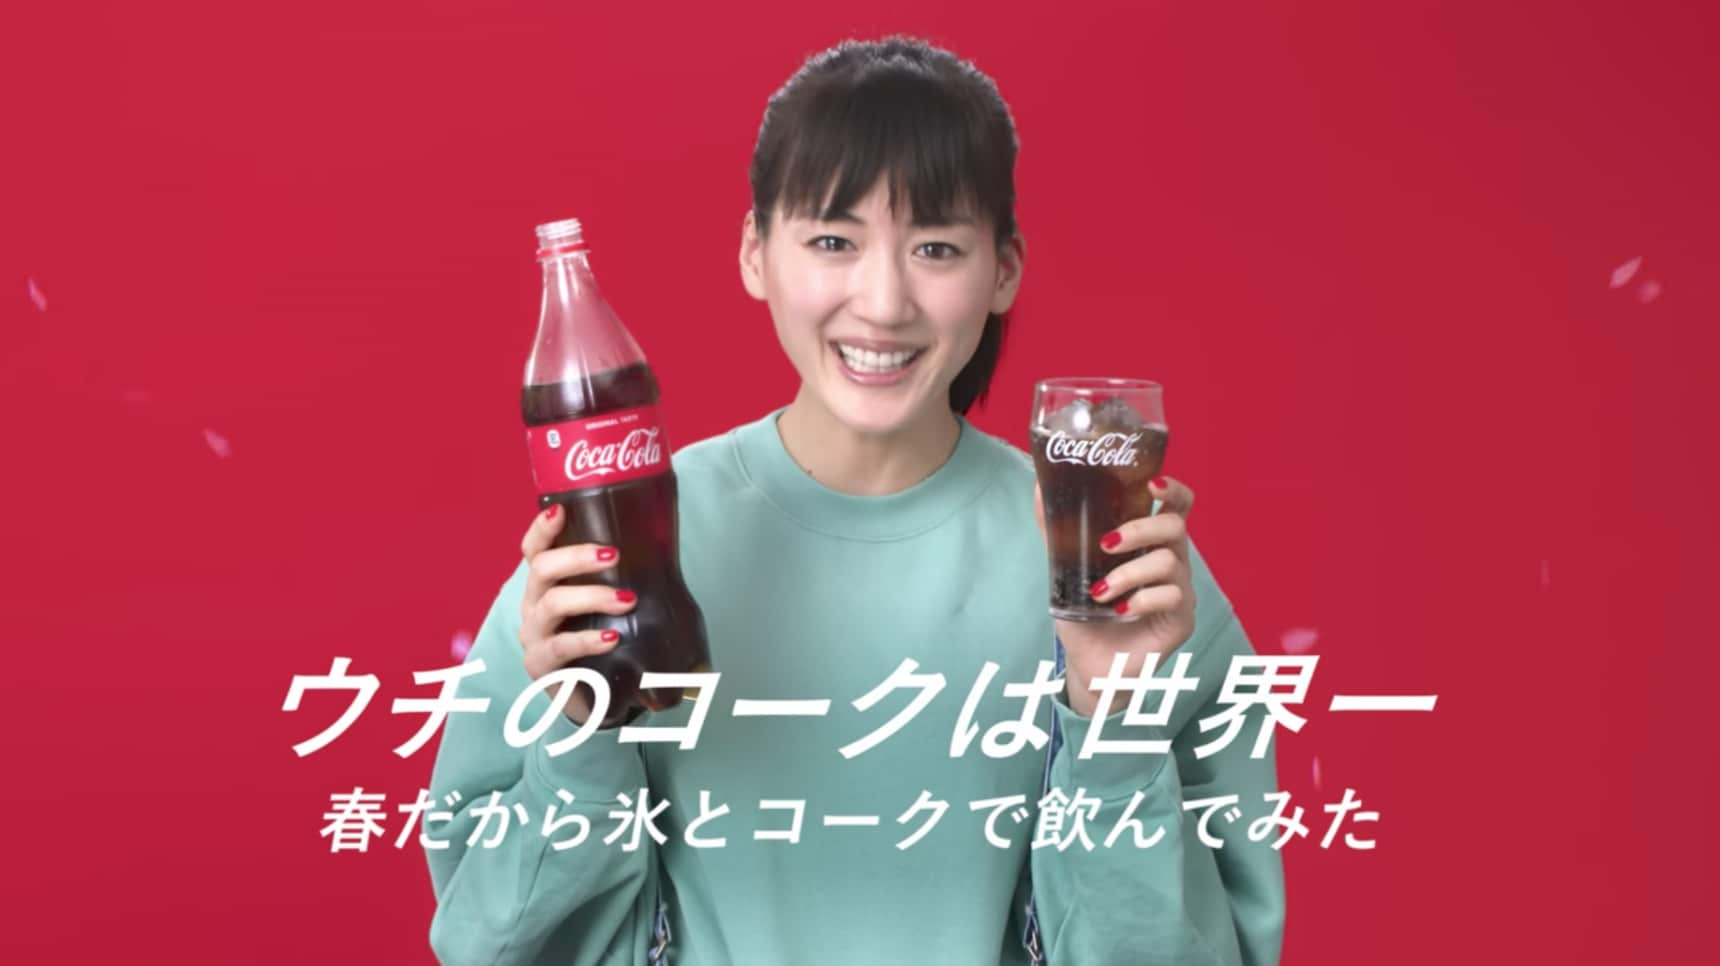 Why Are Japanese Commercials so Different?